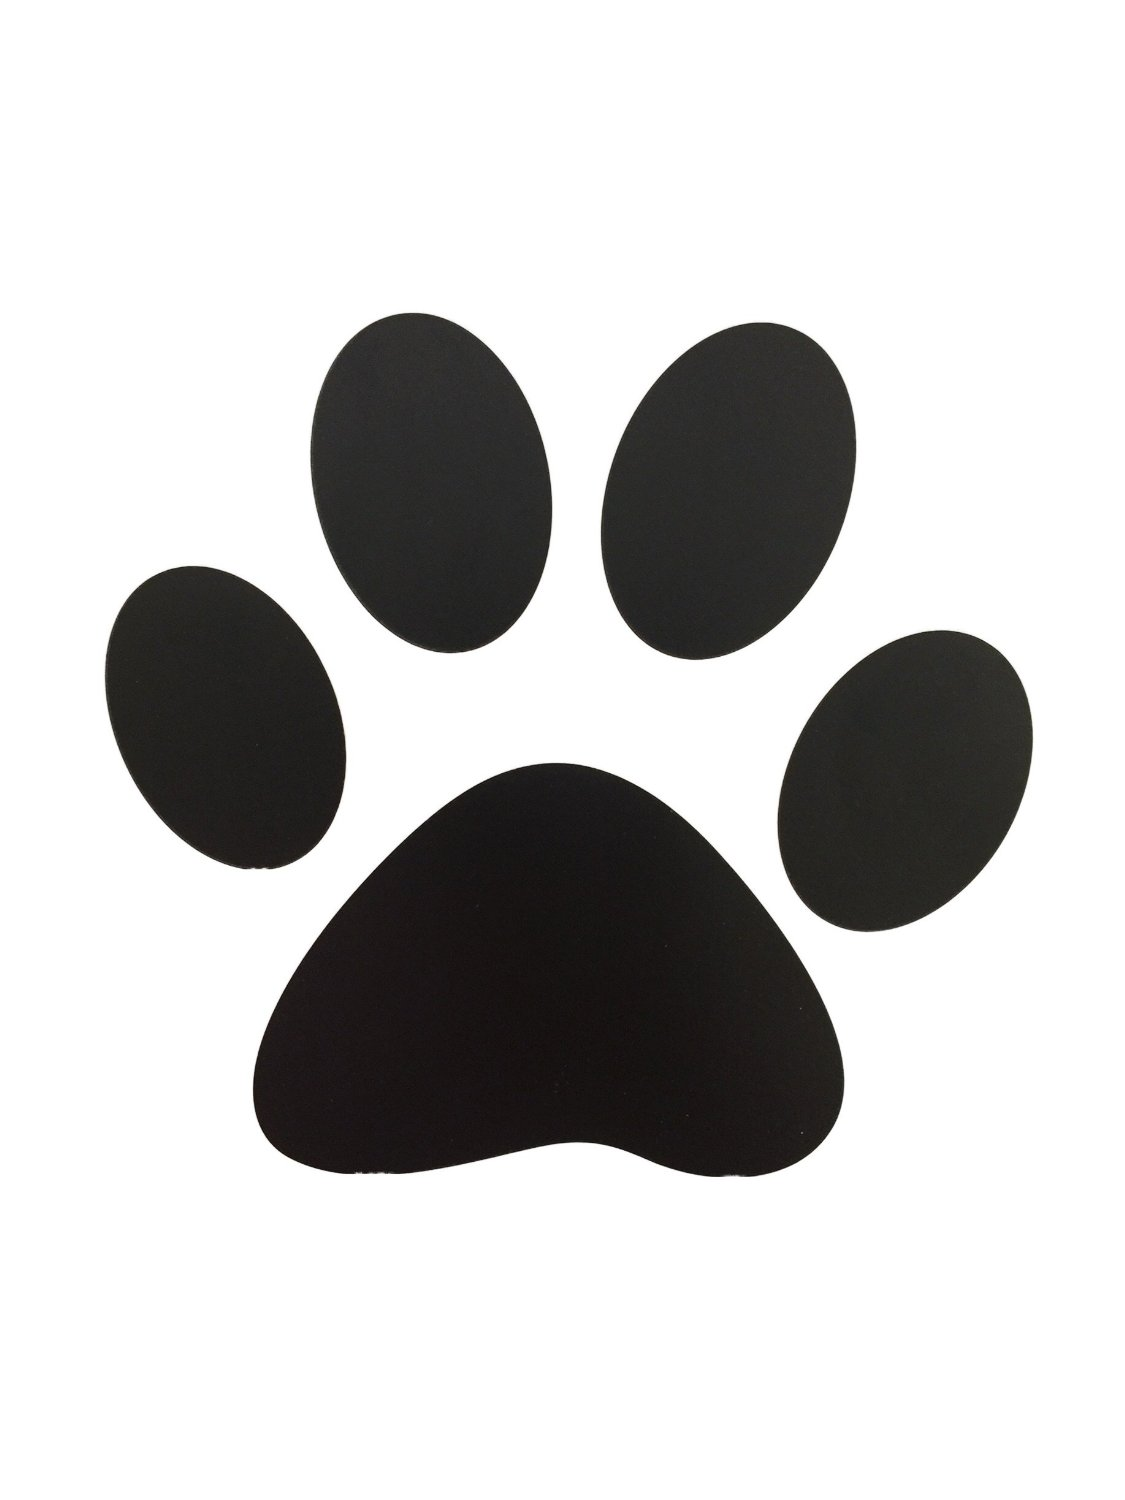 GIFTEXPRESS Paw Print Floor Clings Floor Decal 12 pk